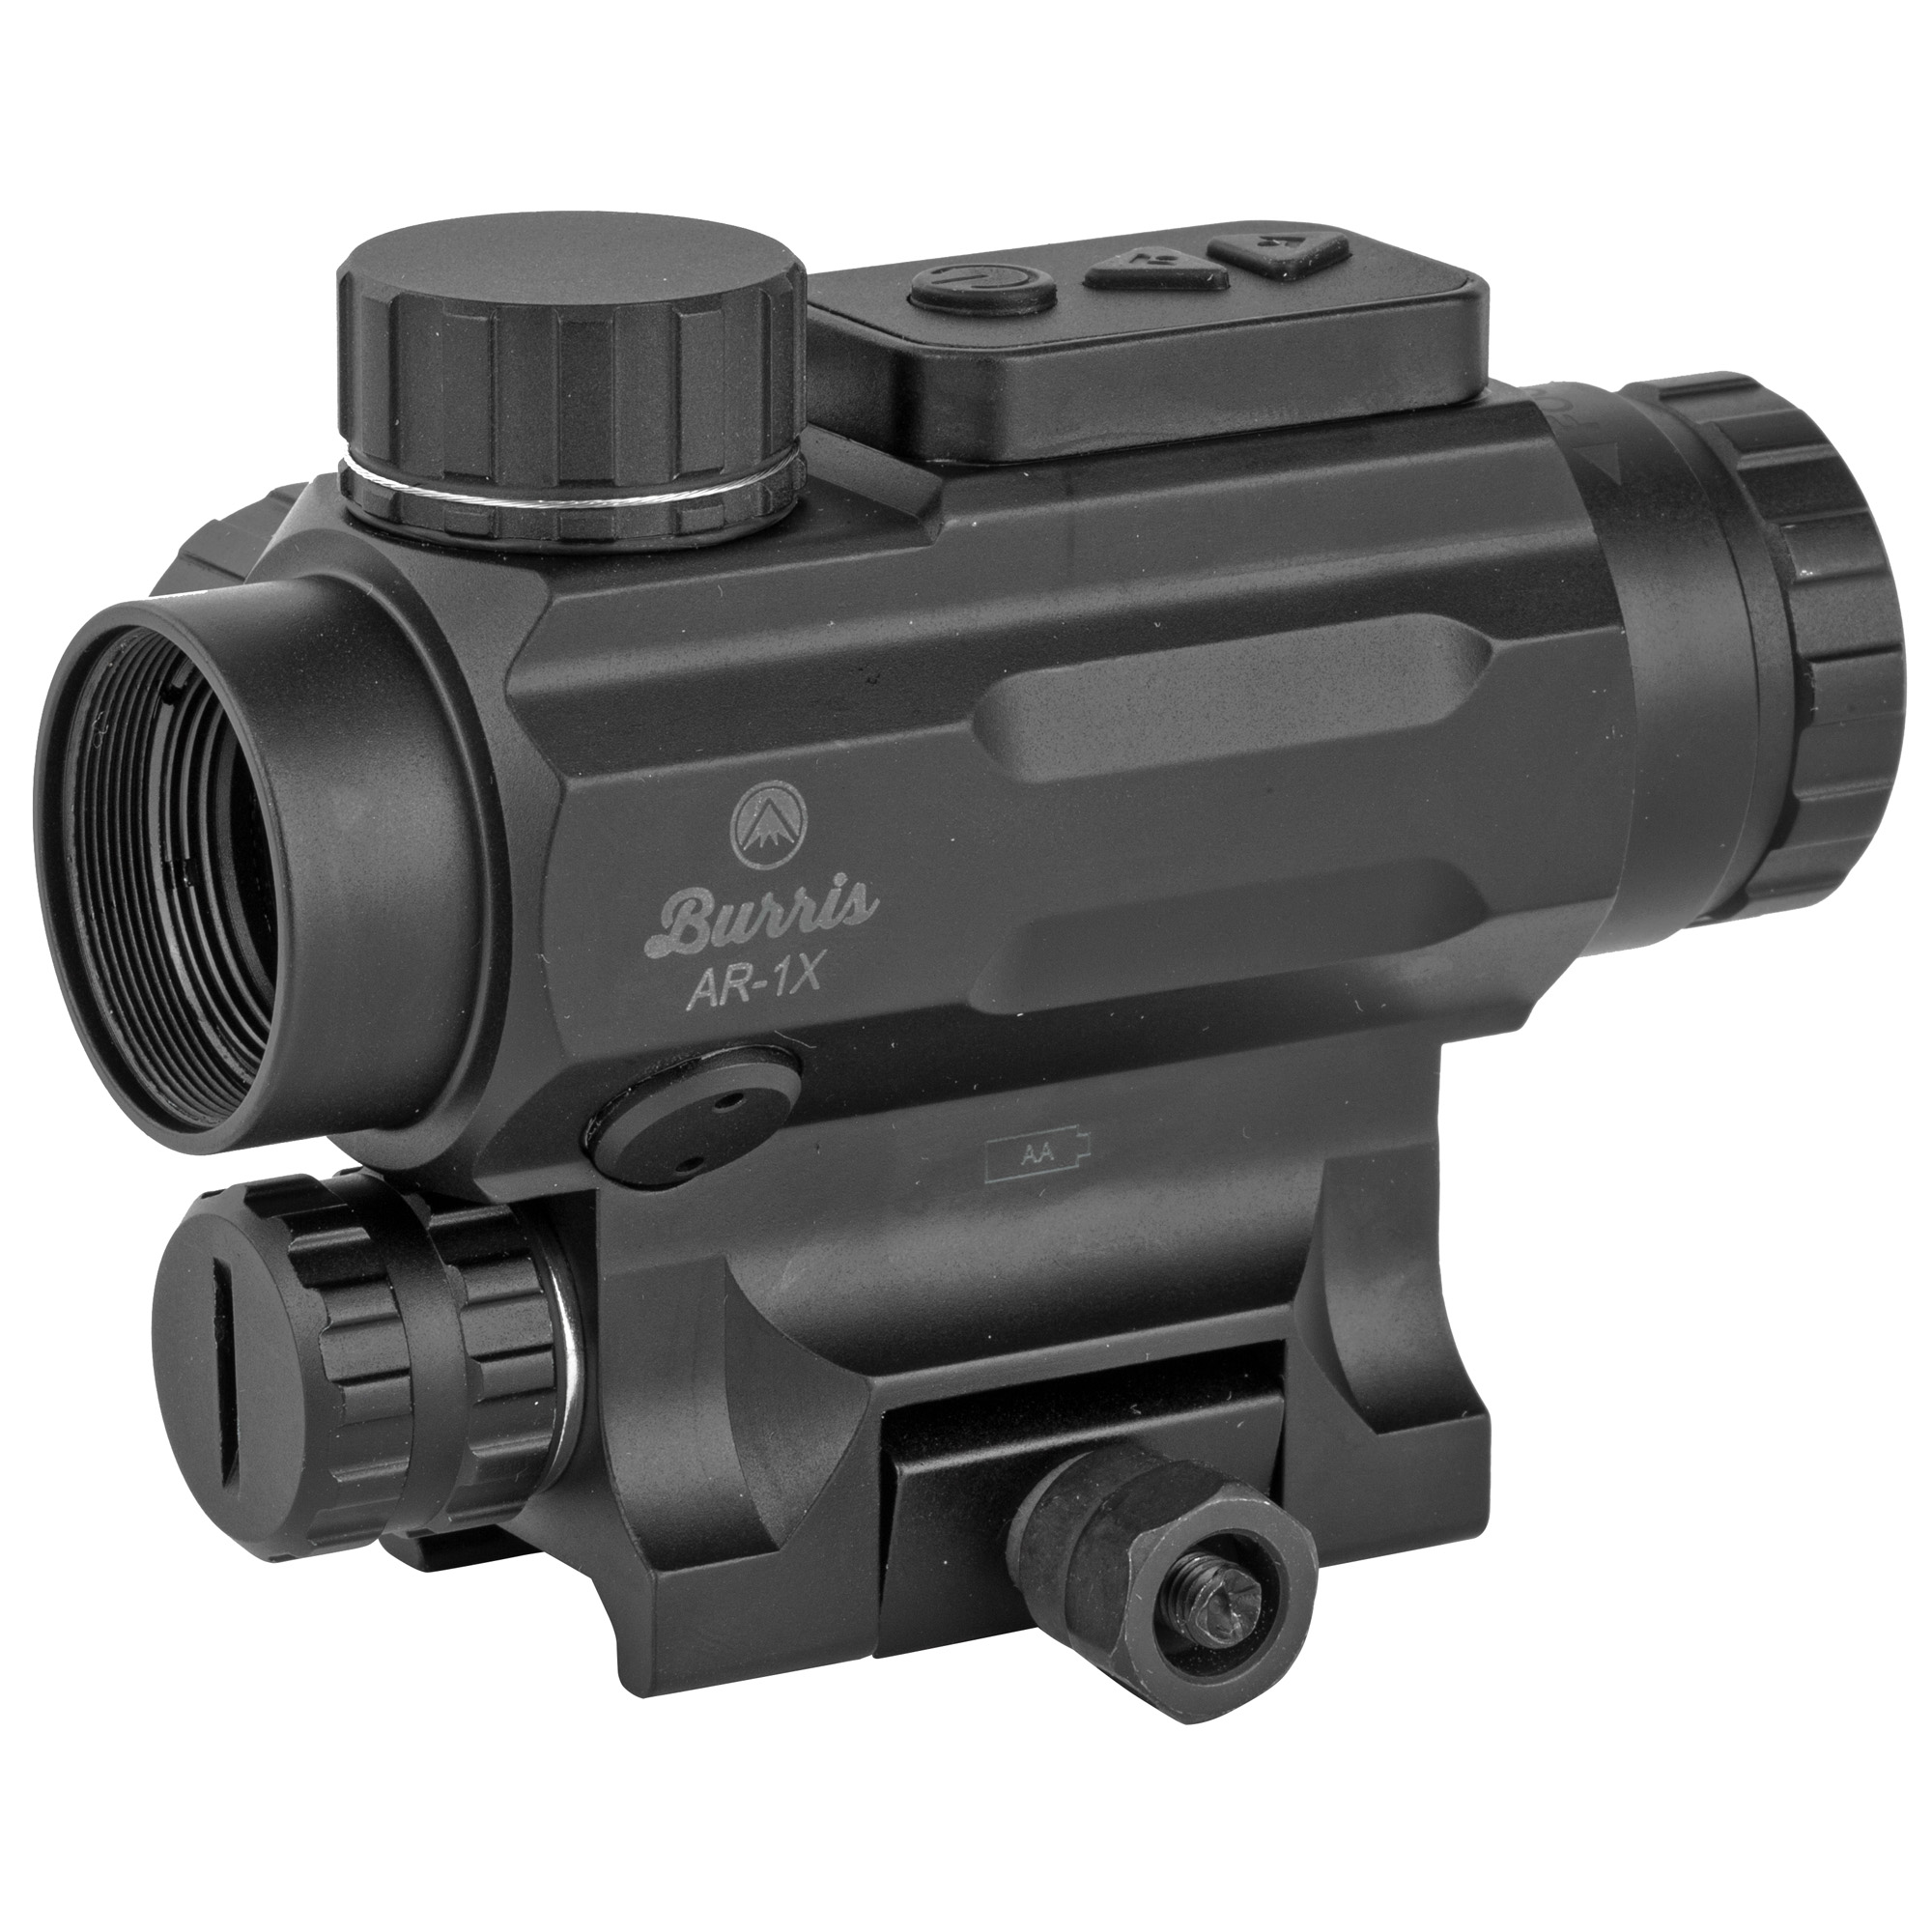 "Don't miss a thing with both-eyes-open shooting. Push-button activation lets you choose between green"" red"" or black reticle settings. One lithium battery yields up to 5""000+ hours of service. The black reticle is etched onto the prism"" so you can use the optic even without battery power. Easy-to-see reticle hash marks offer trajectory compensation to 600 yards. Lens coatings are maximized for glare resistance and low-light operation"" and the sight is night-vision compatible."